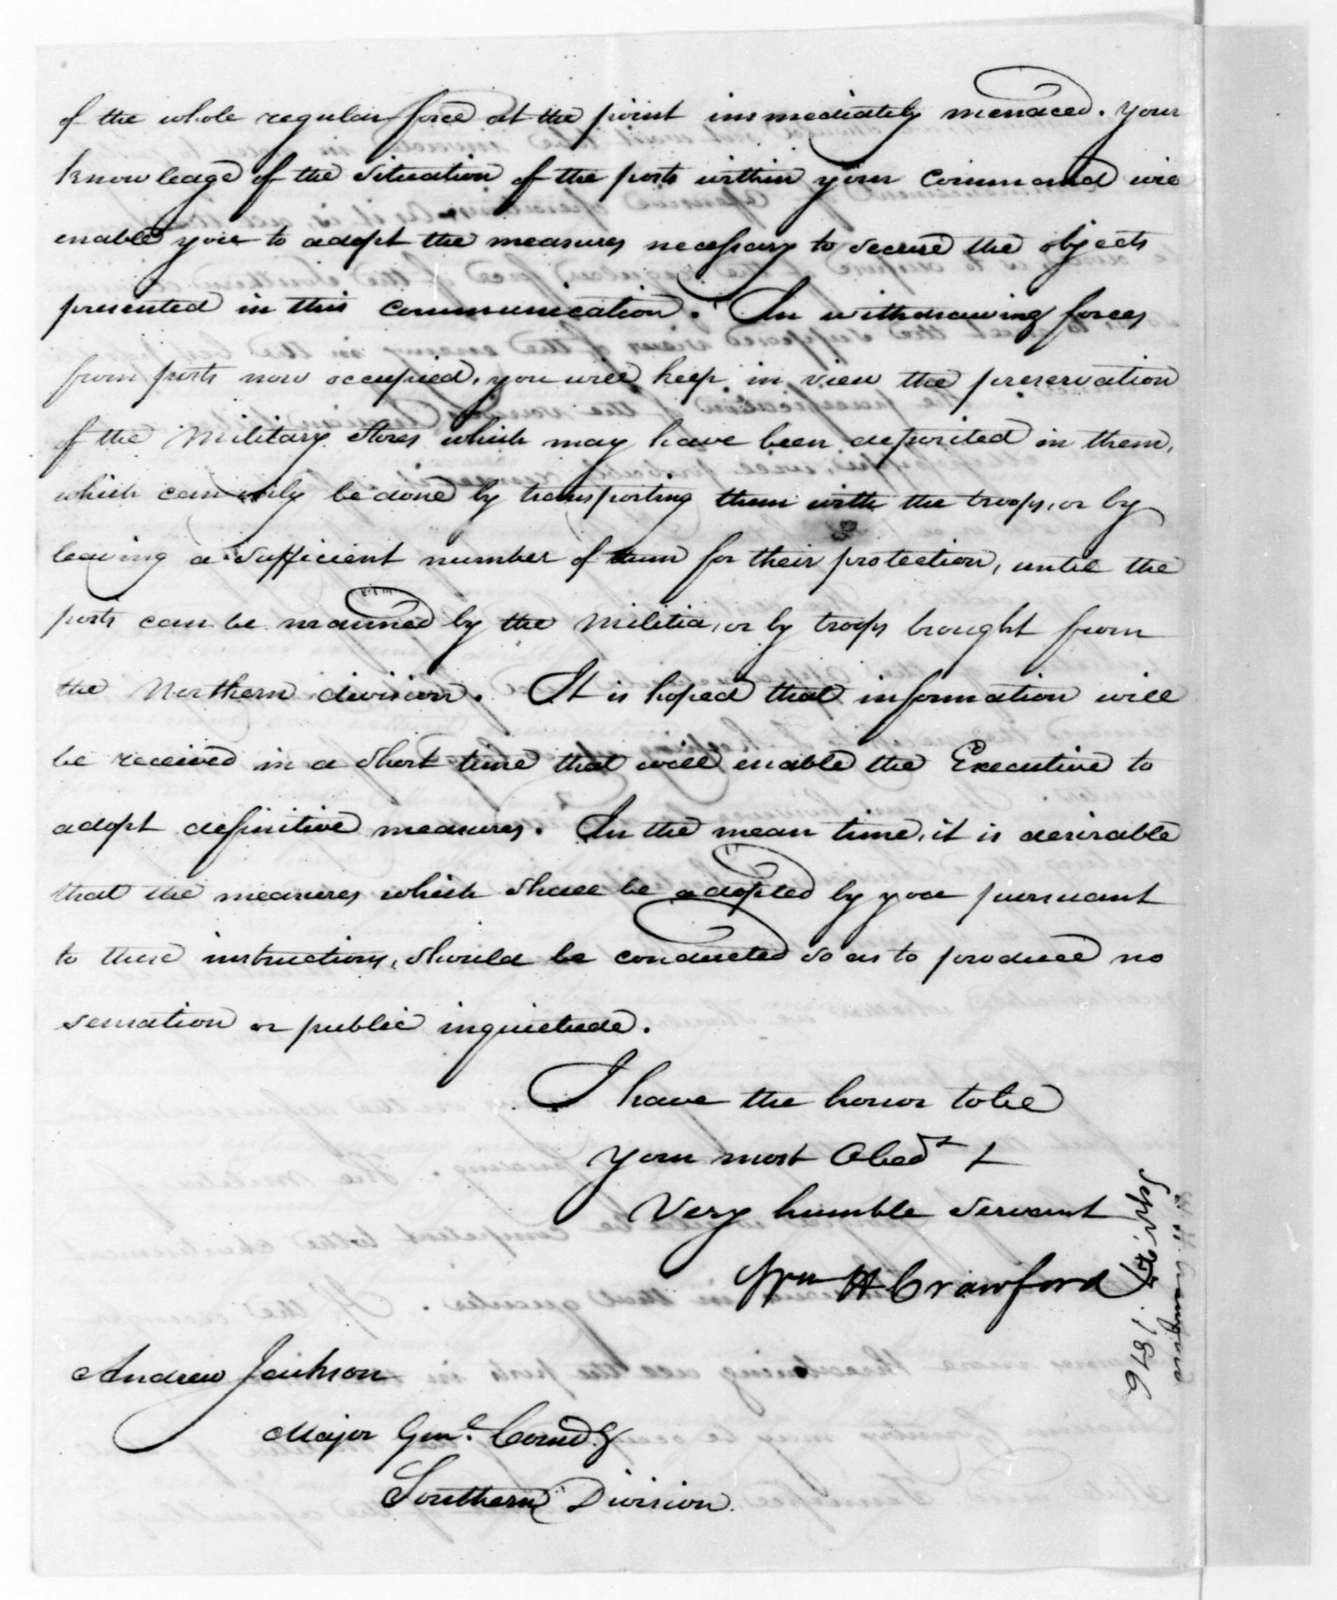 William H. Crawford to Andrew Jackson, September 27, 1816.